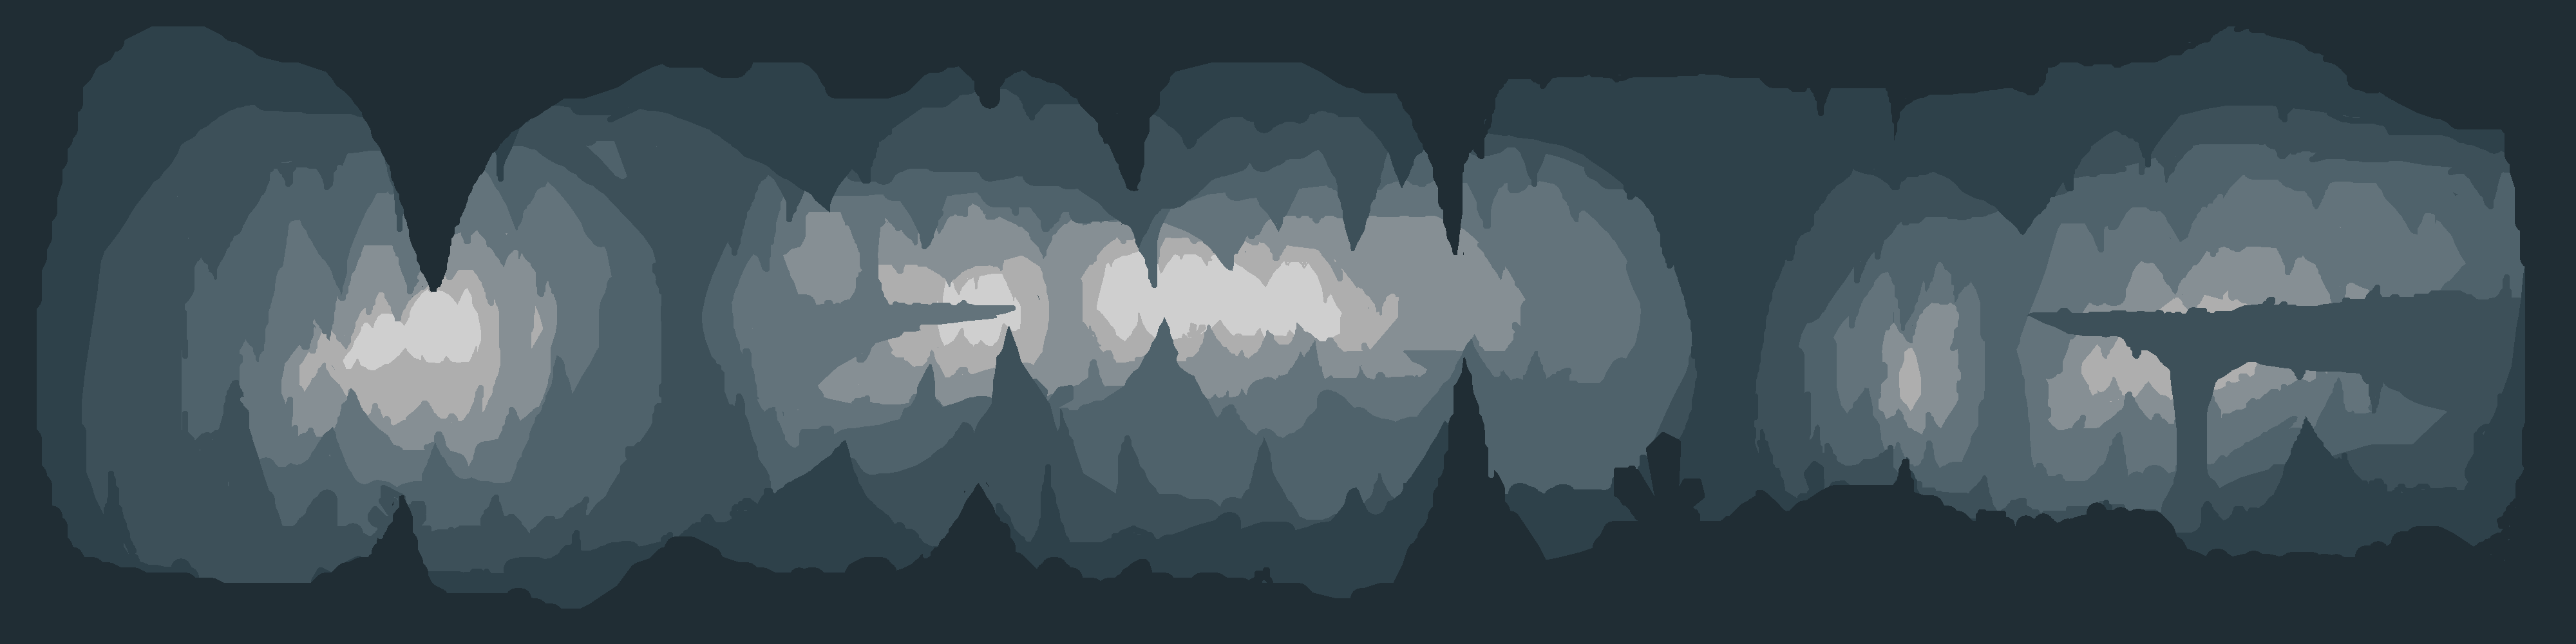 caves.png